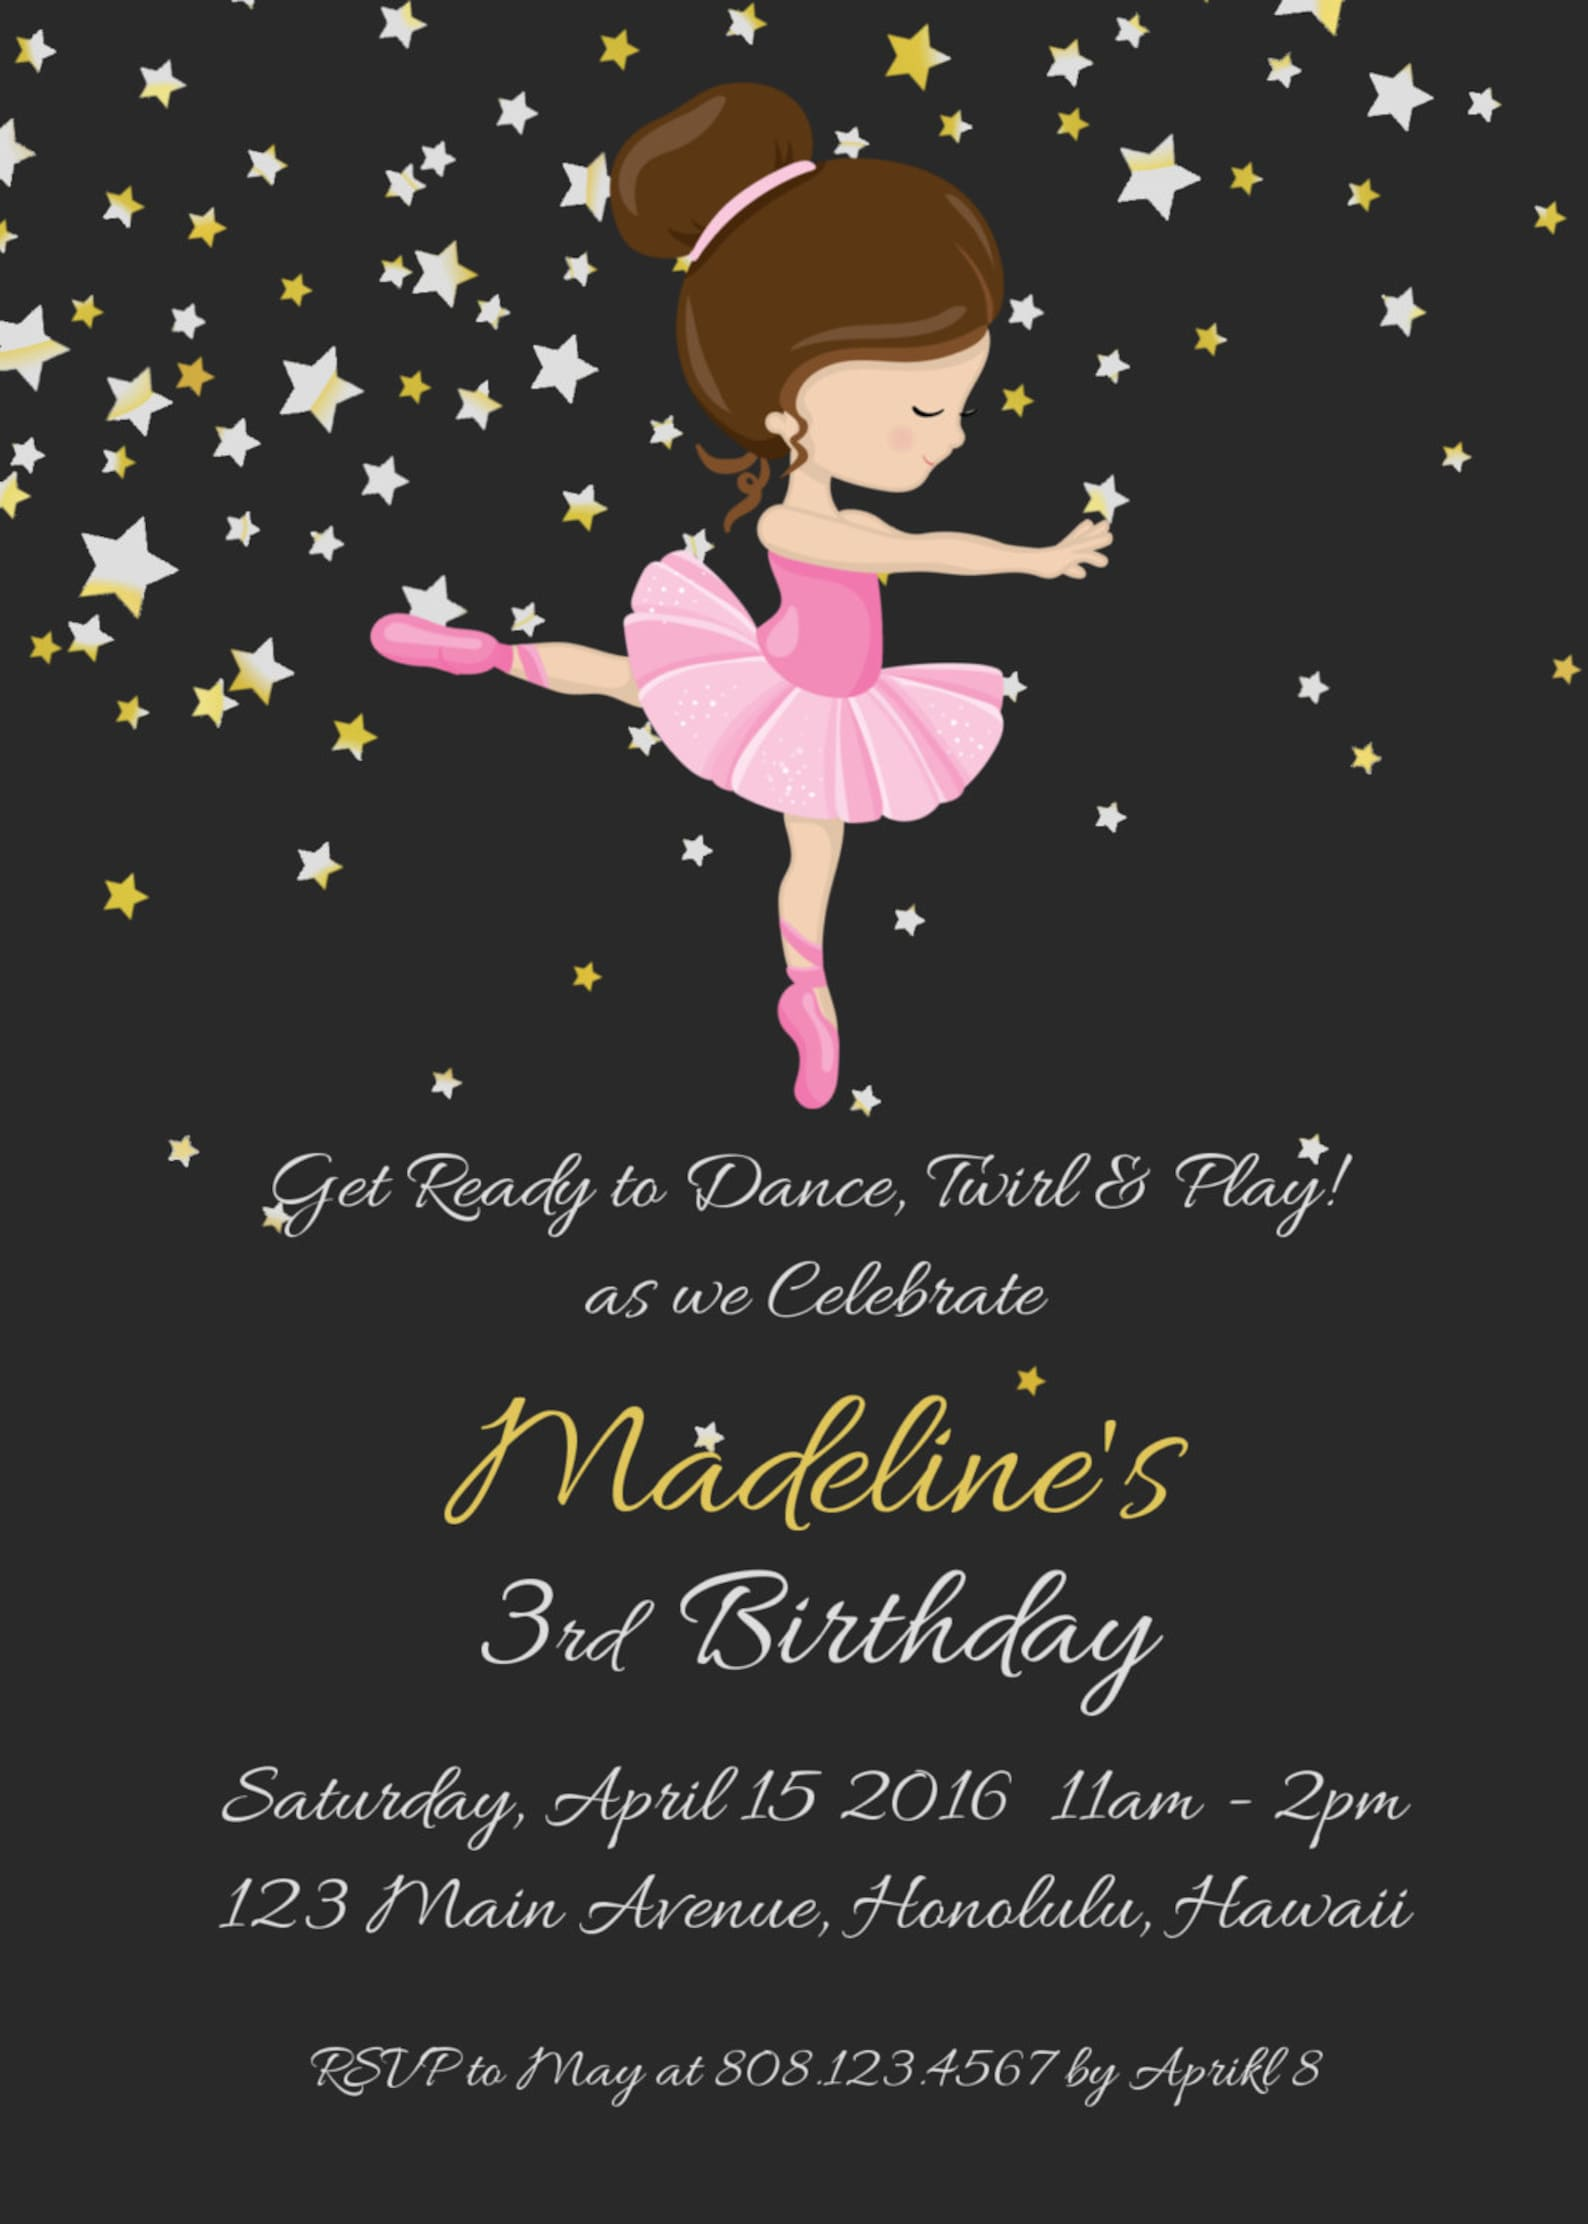 ballerina birthday invitation, ballerina invitation, ballerina party invitation, ballet birthday invitation, custom invitation